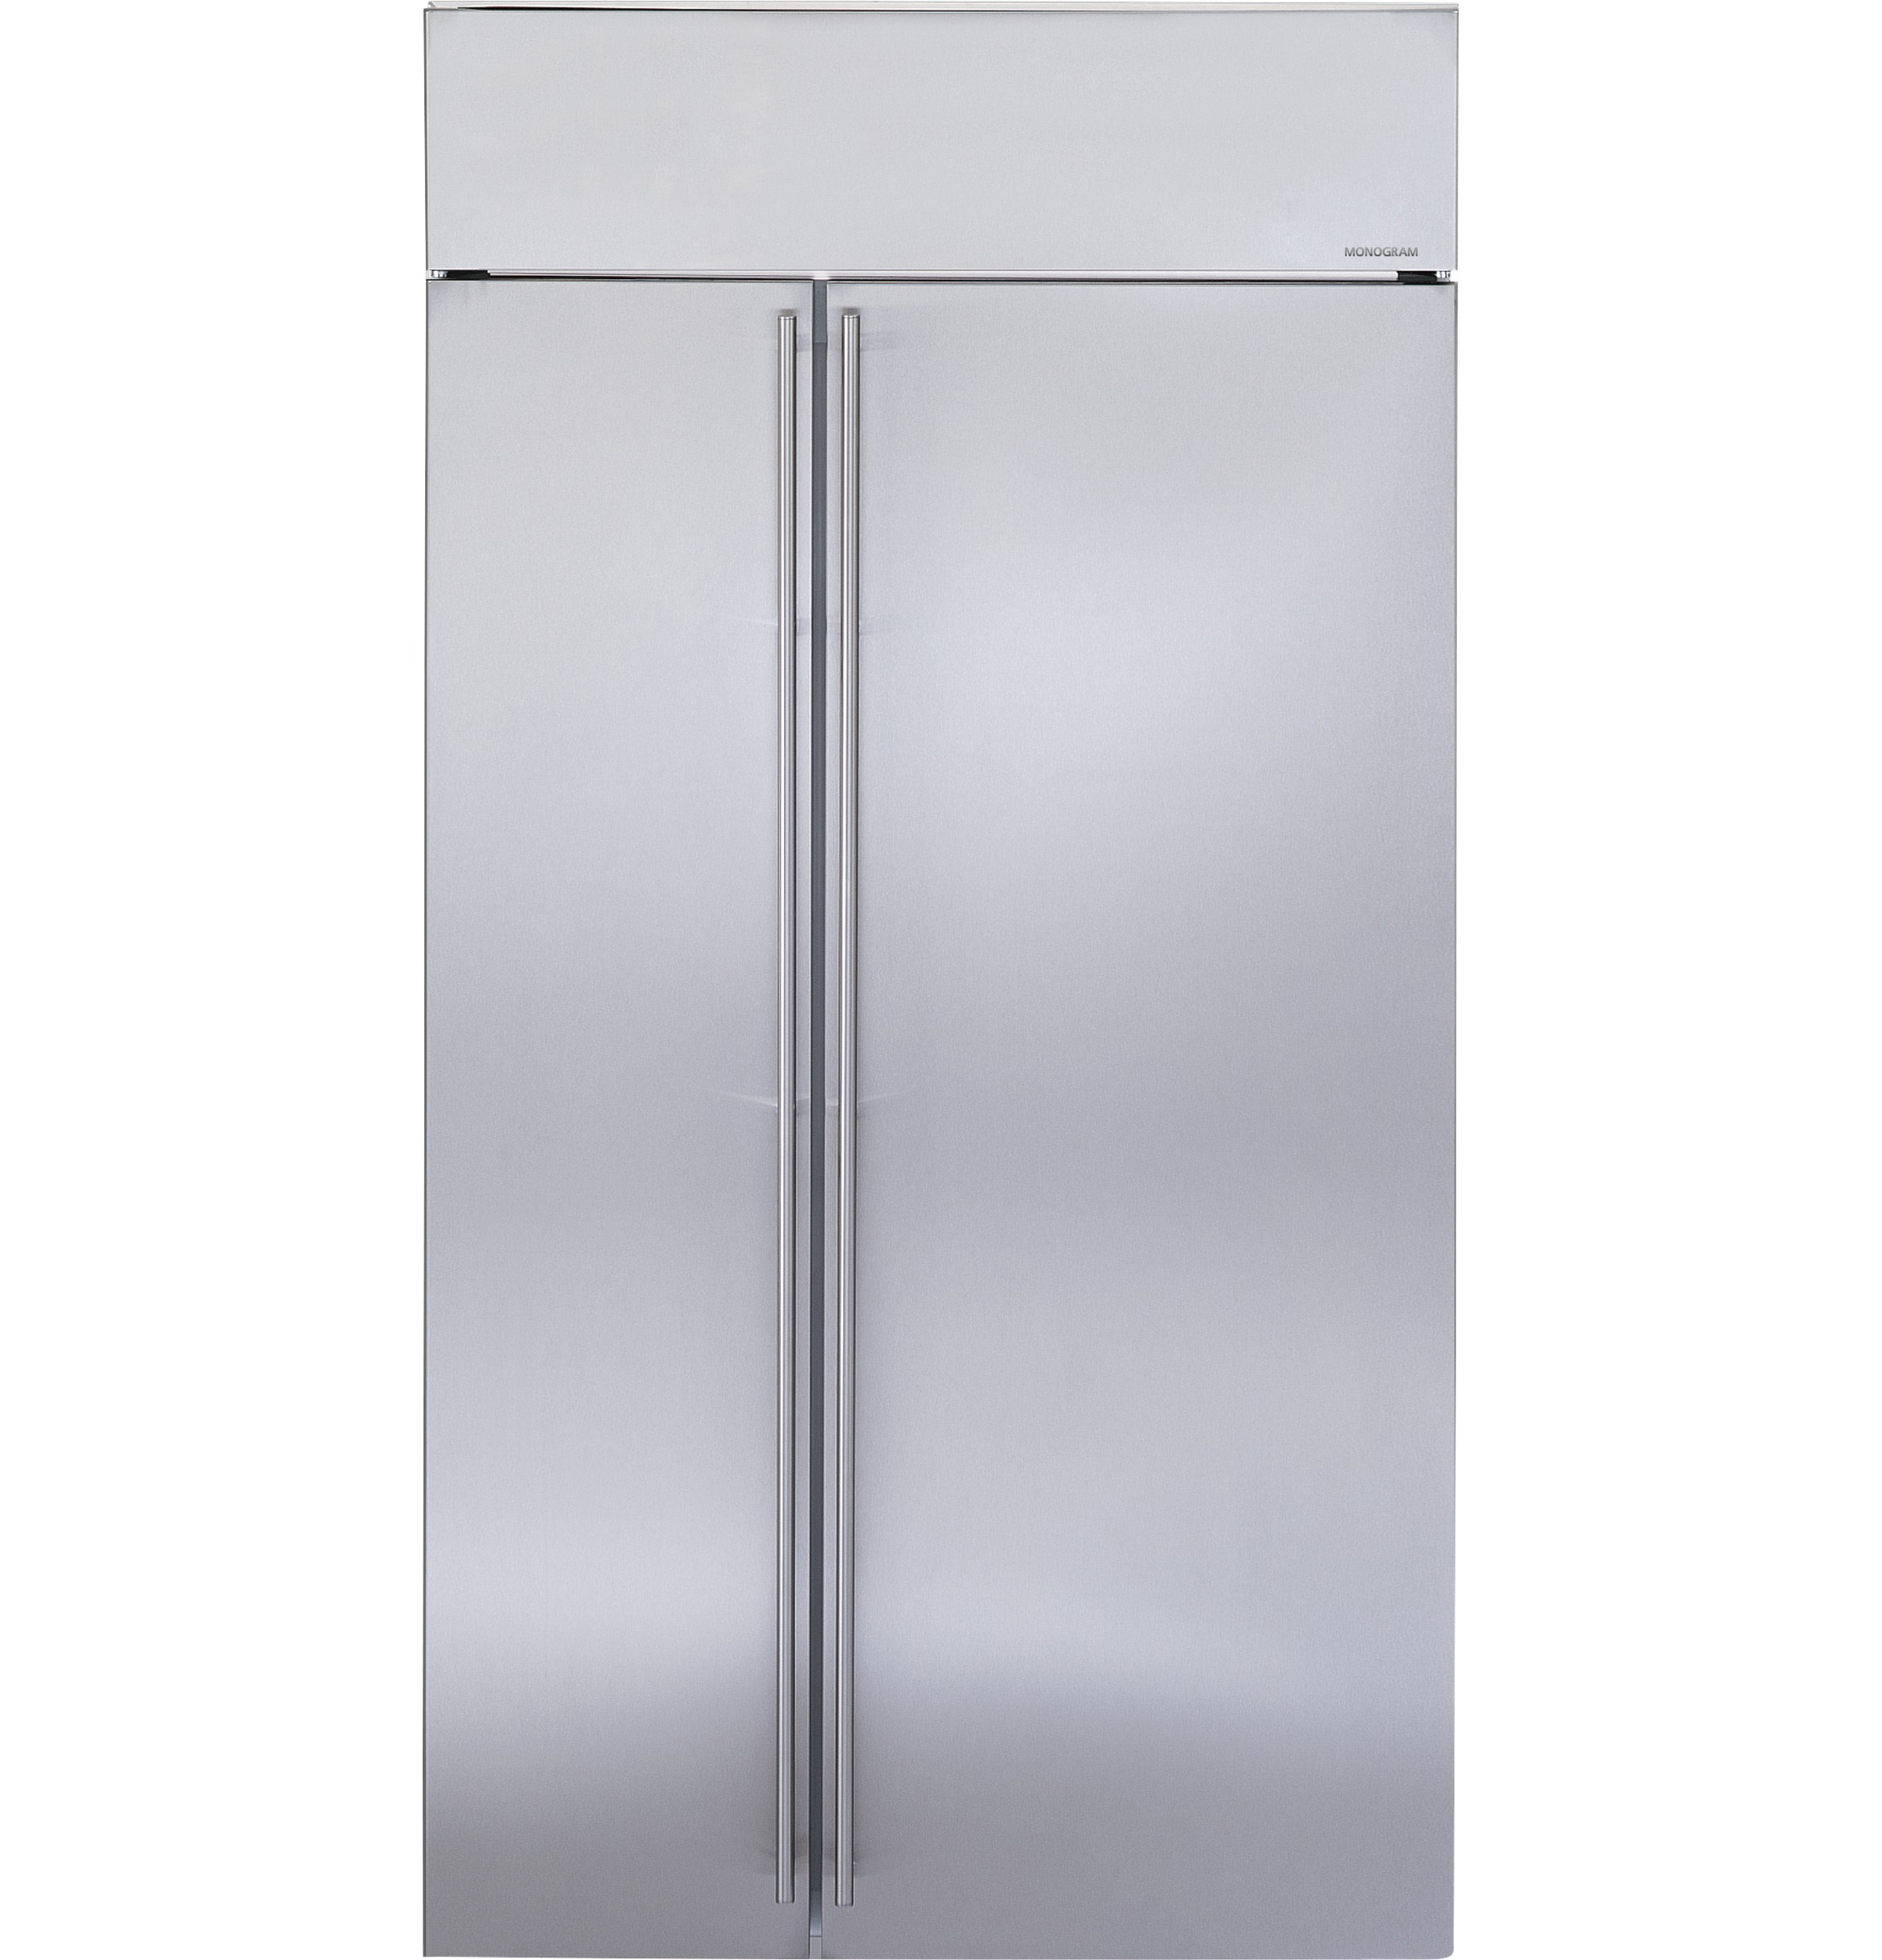 "Monogram Monogram 42"" Smart Built-In Side-by-Side Refrigerator"